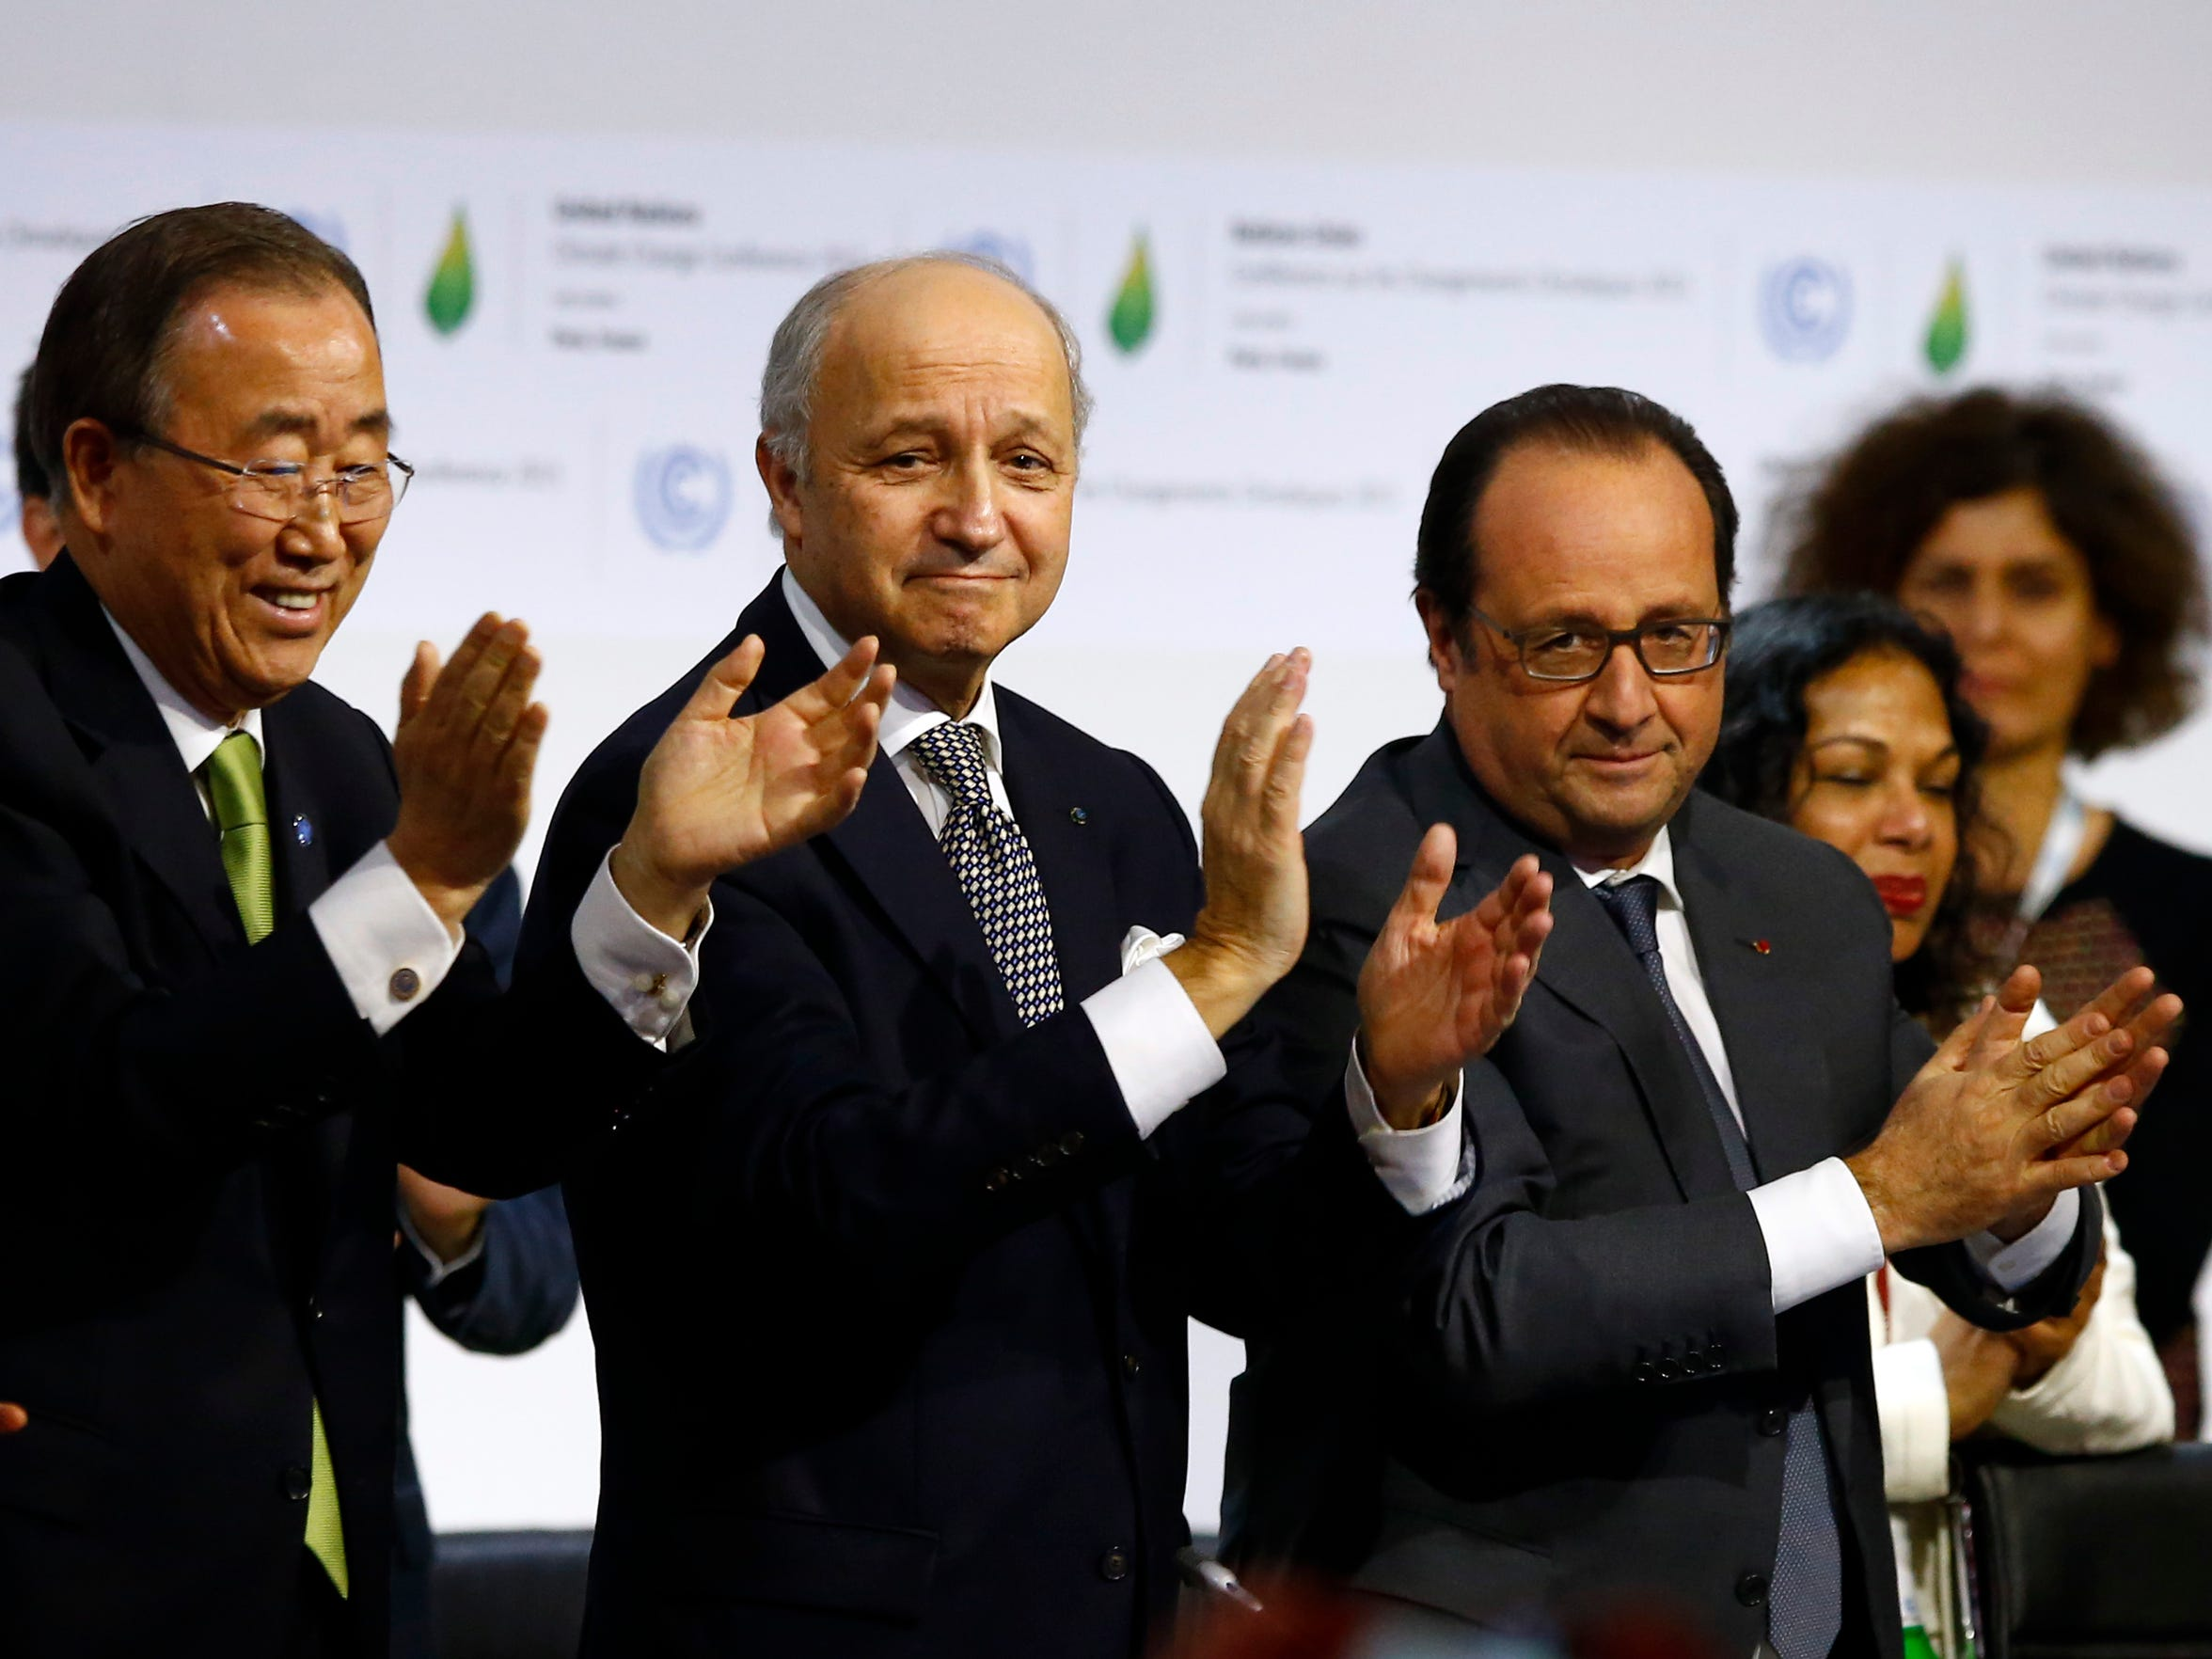 United Nations Secretary General Ban Ki-moon, left, French Foreign Minister Laurent Fabius, center, and French President Francois Hollande applaud at the end of the United Nations climate summit at Le Bourget, north of Paris, on Dec.12, 2015.